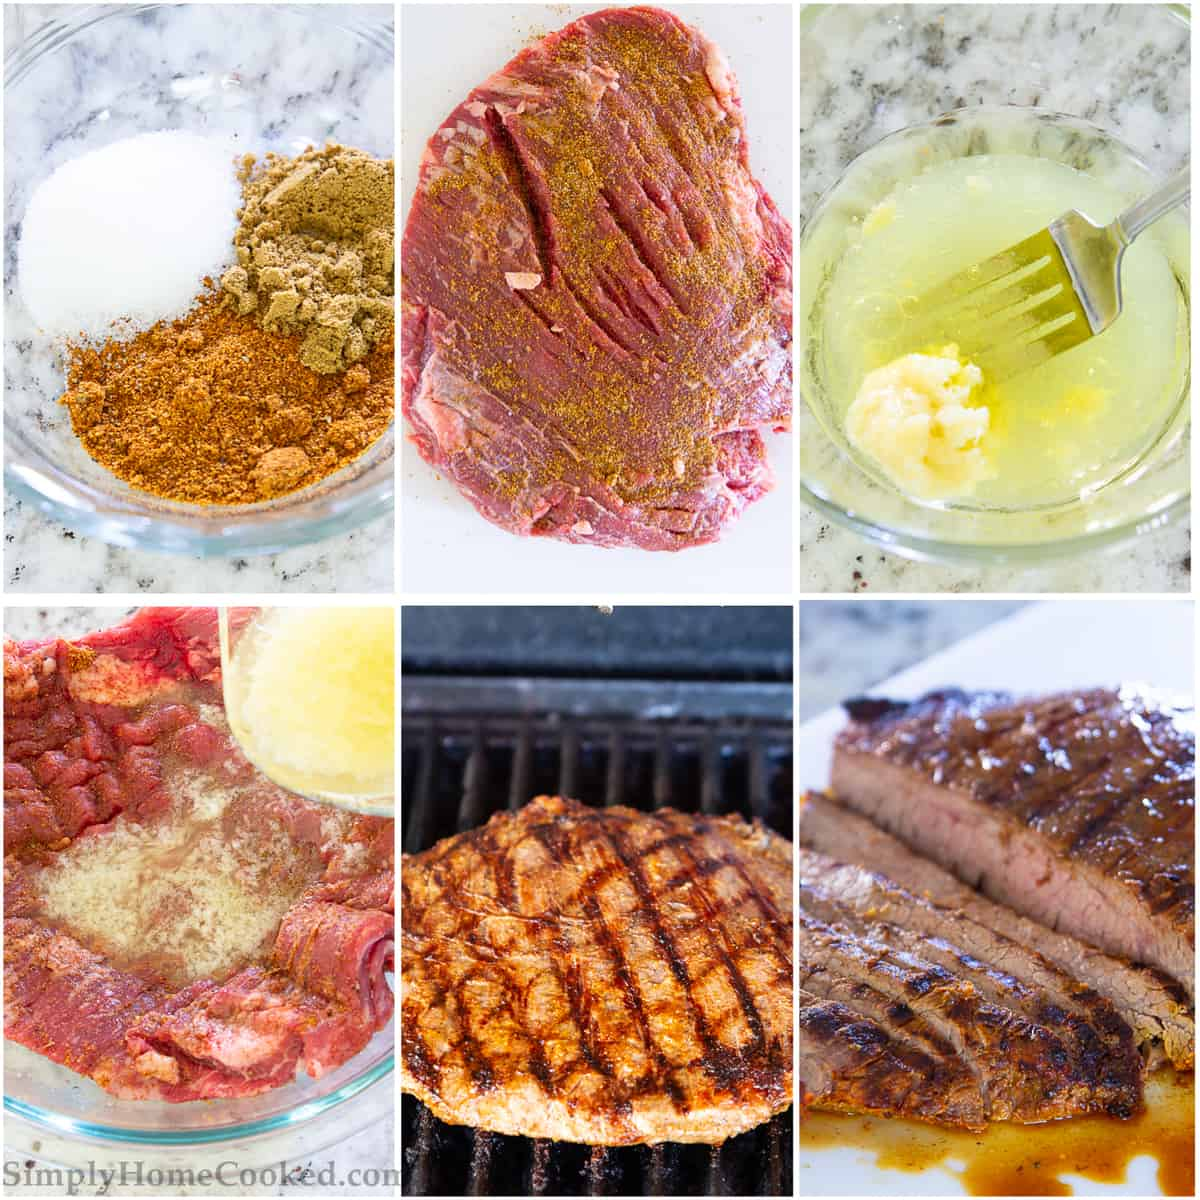 Step by Step photo collage of preparing spice and marinade for flank steak as well as grilling for the steak taco recipe